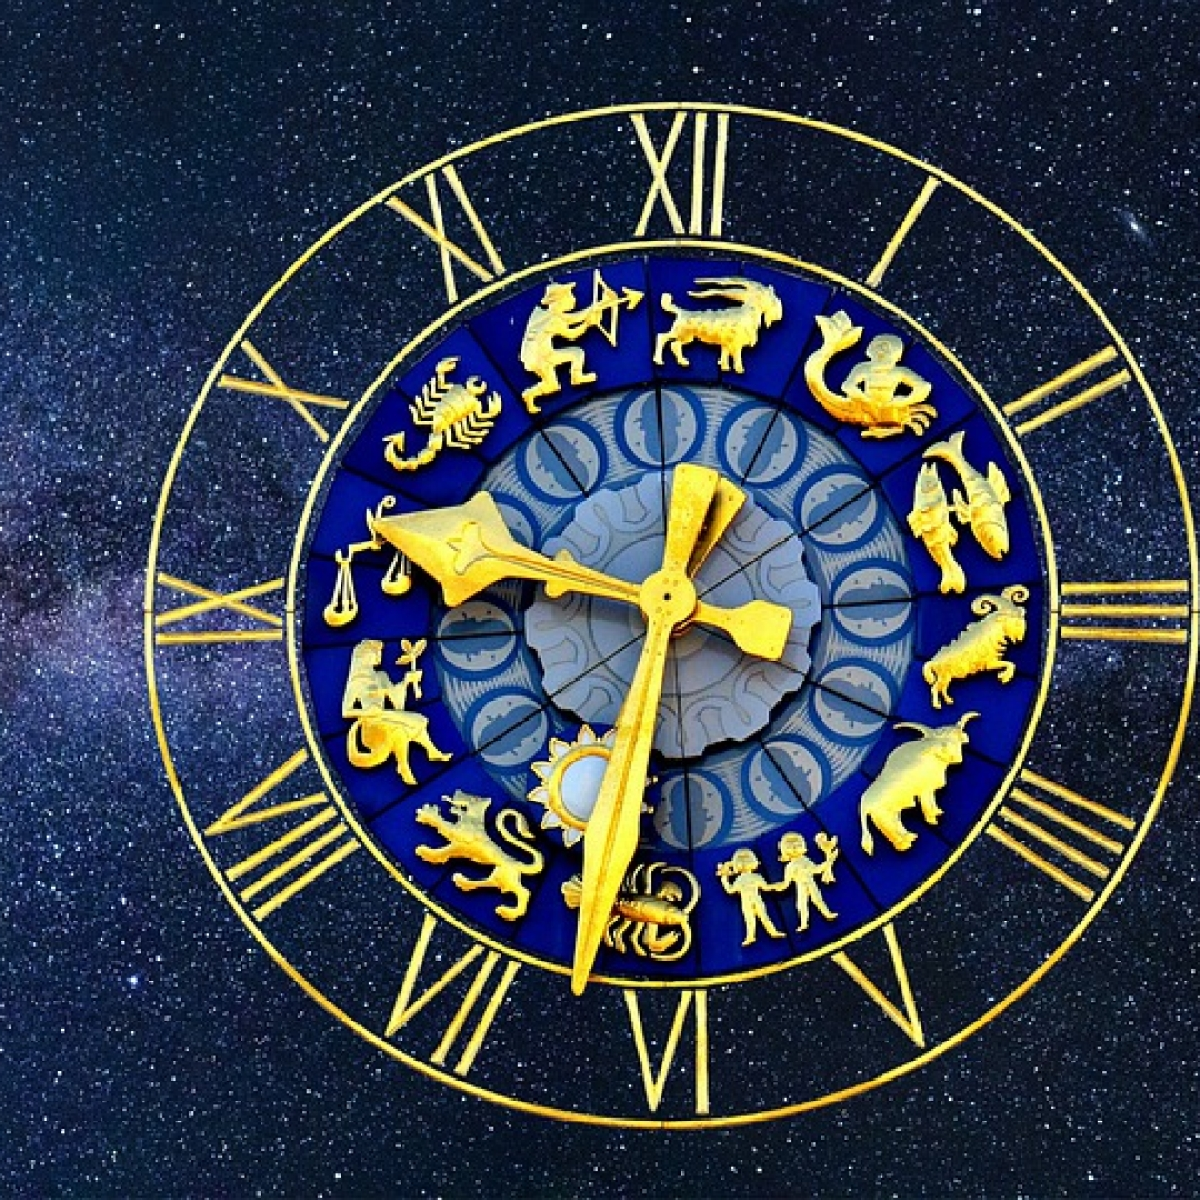 Daily Horoscope for Monday, May 10, 2021, for all zodiac signs